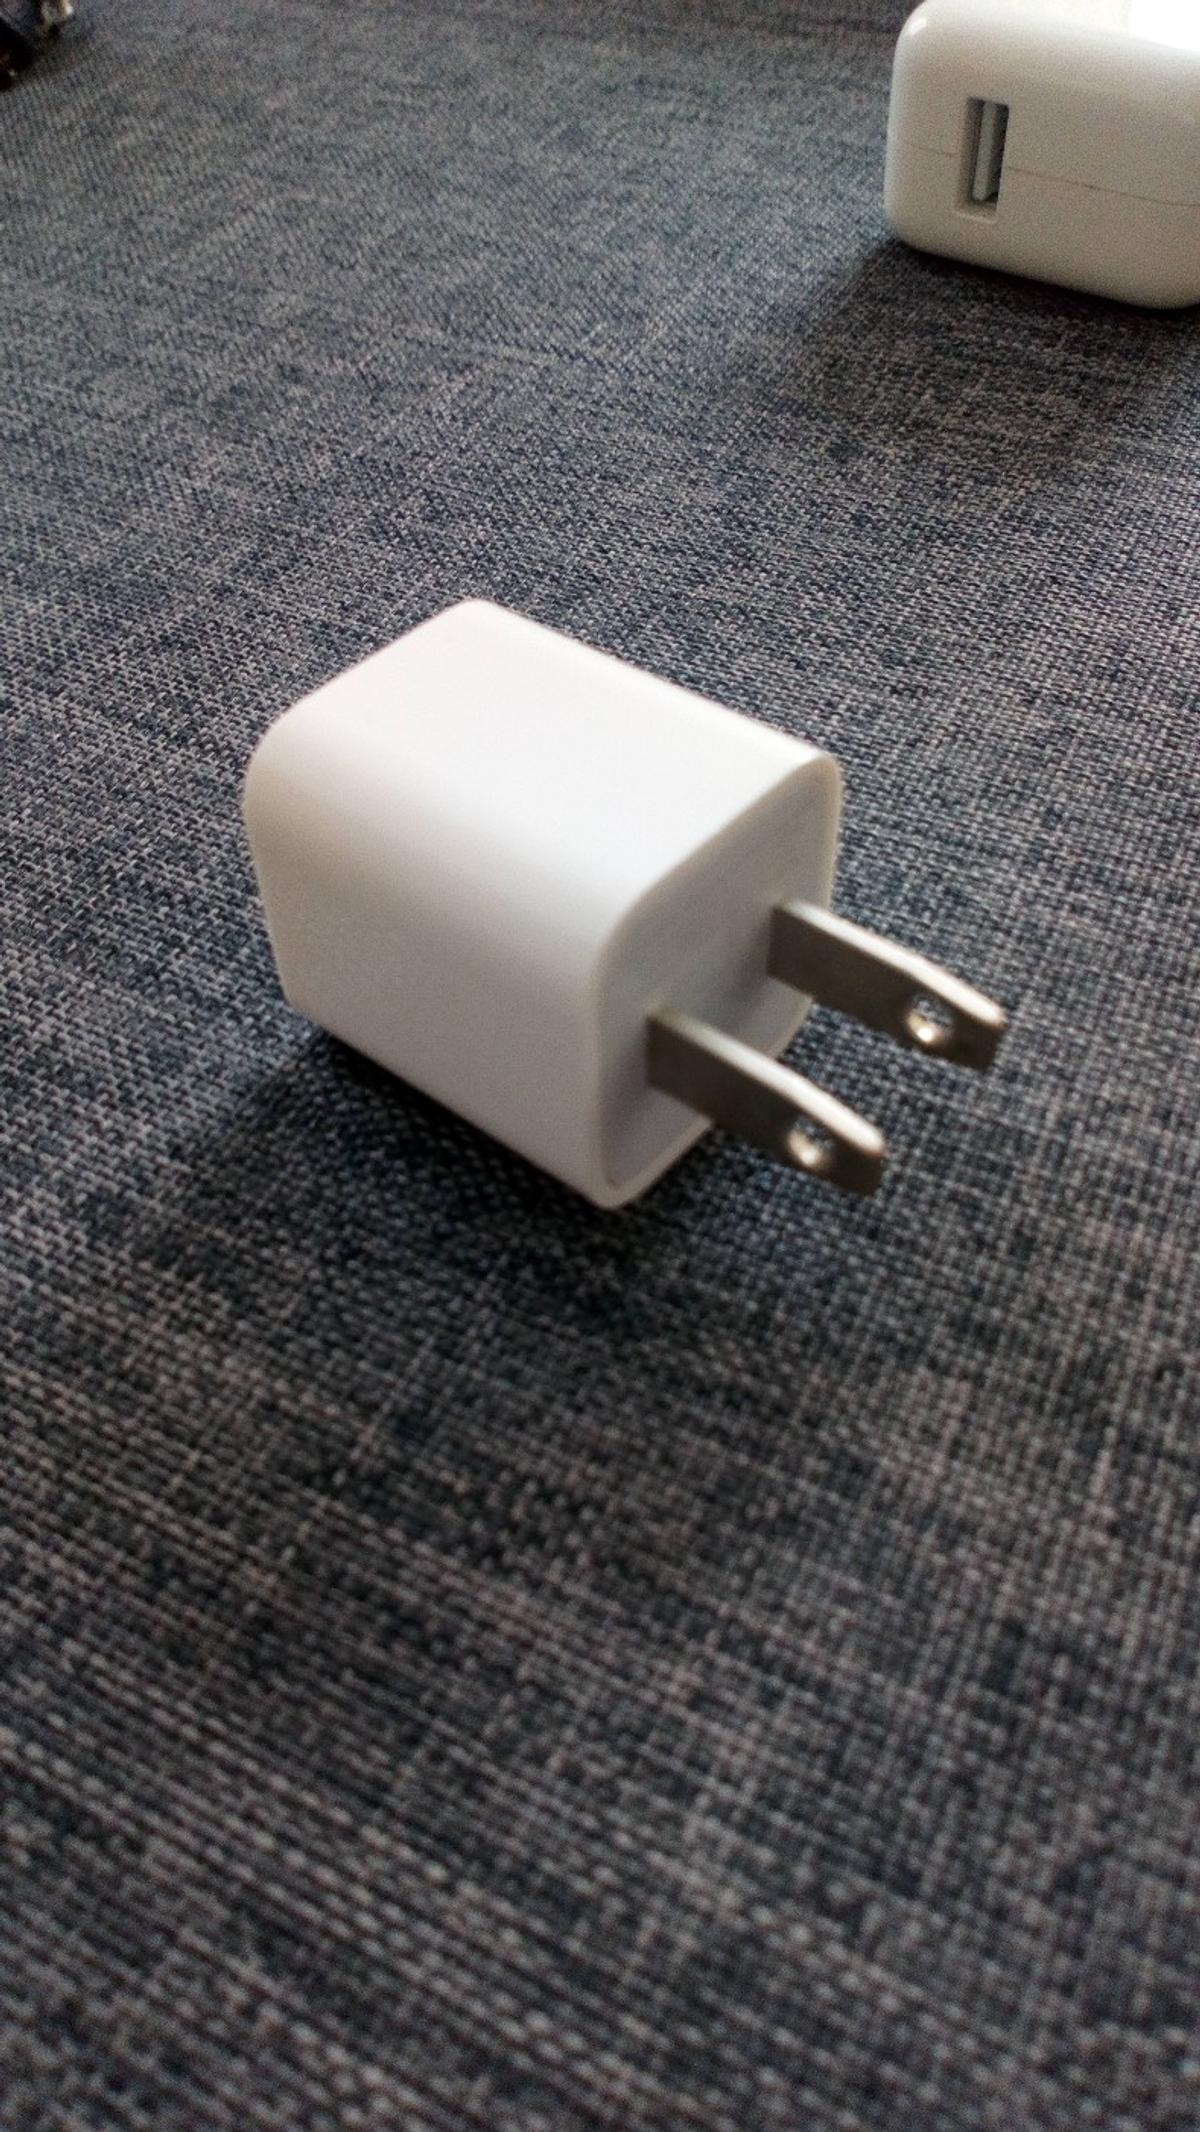 Apple iphone abroad charging AC plug adapter